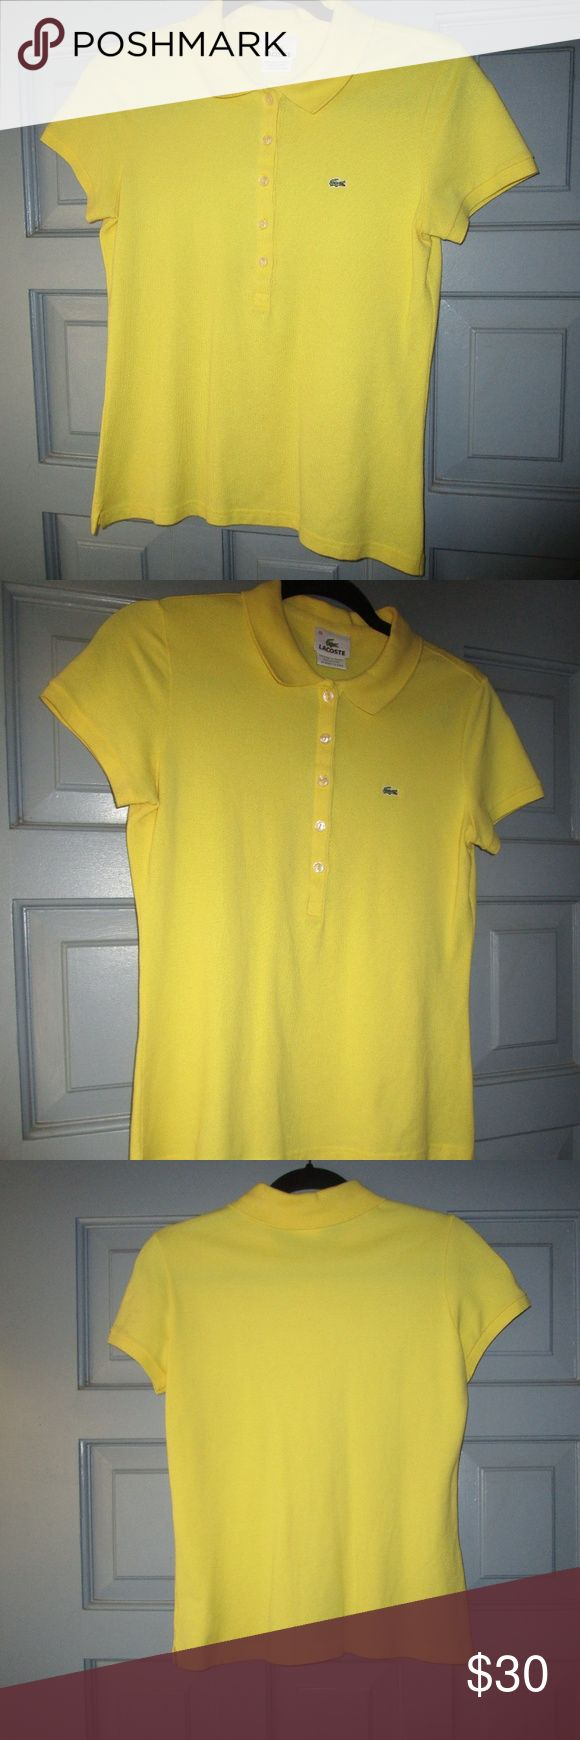 LACOSTE bright yellow polo shirt LACOSTE bright yellow polo shirt size 40. Classic polo, great condition, flattering shade of yellow. Lacoste Tops